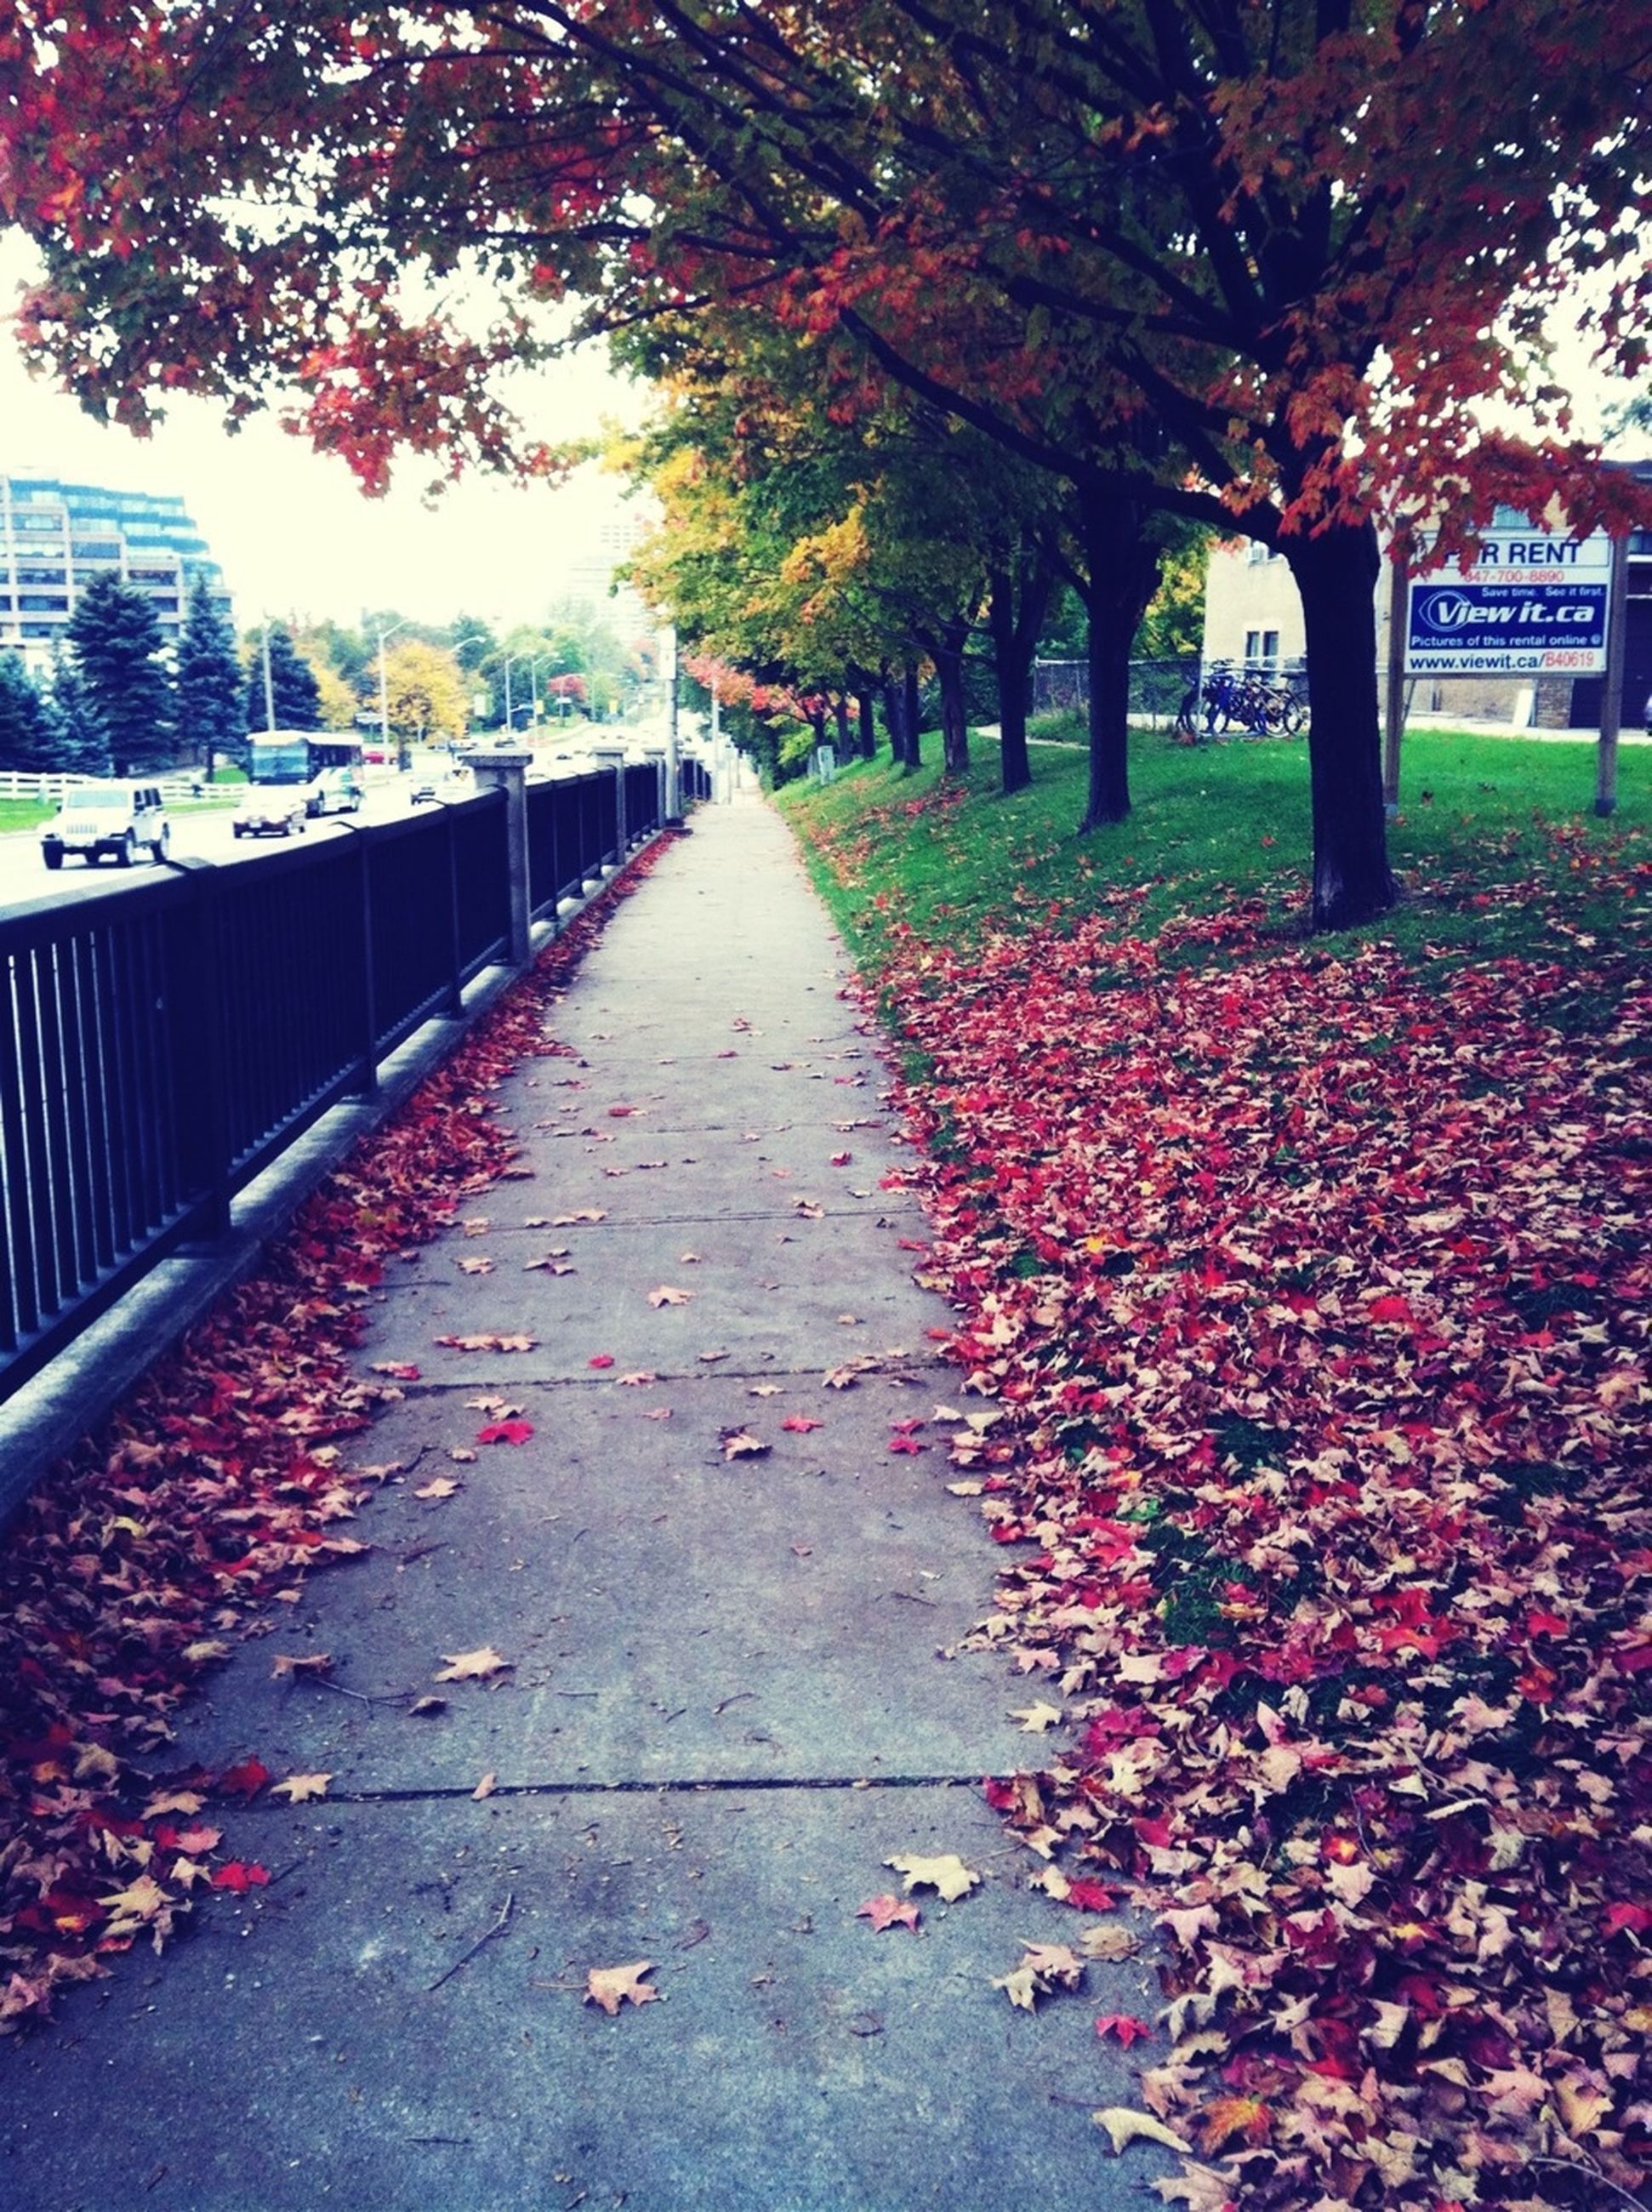 tree, autumn, the way forward, leaf, change, flower, diminishing perspective, season, growth, footpath, nature, park - man made space, vanishing point, fallen, day, red, branch, treelined, street, walkway